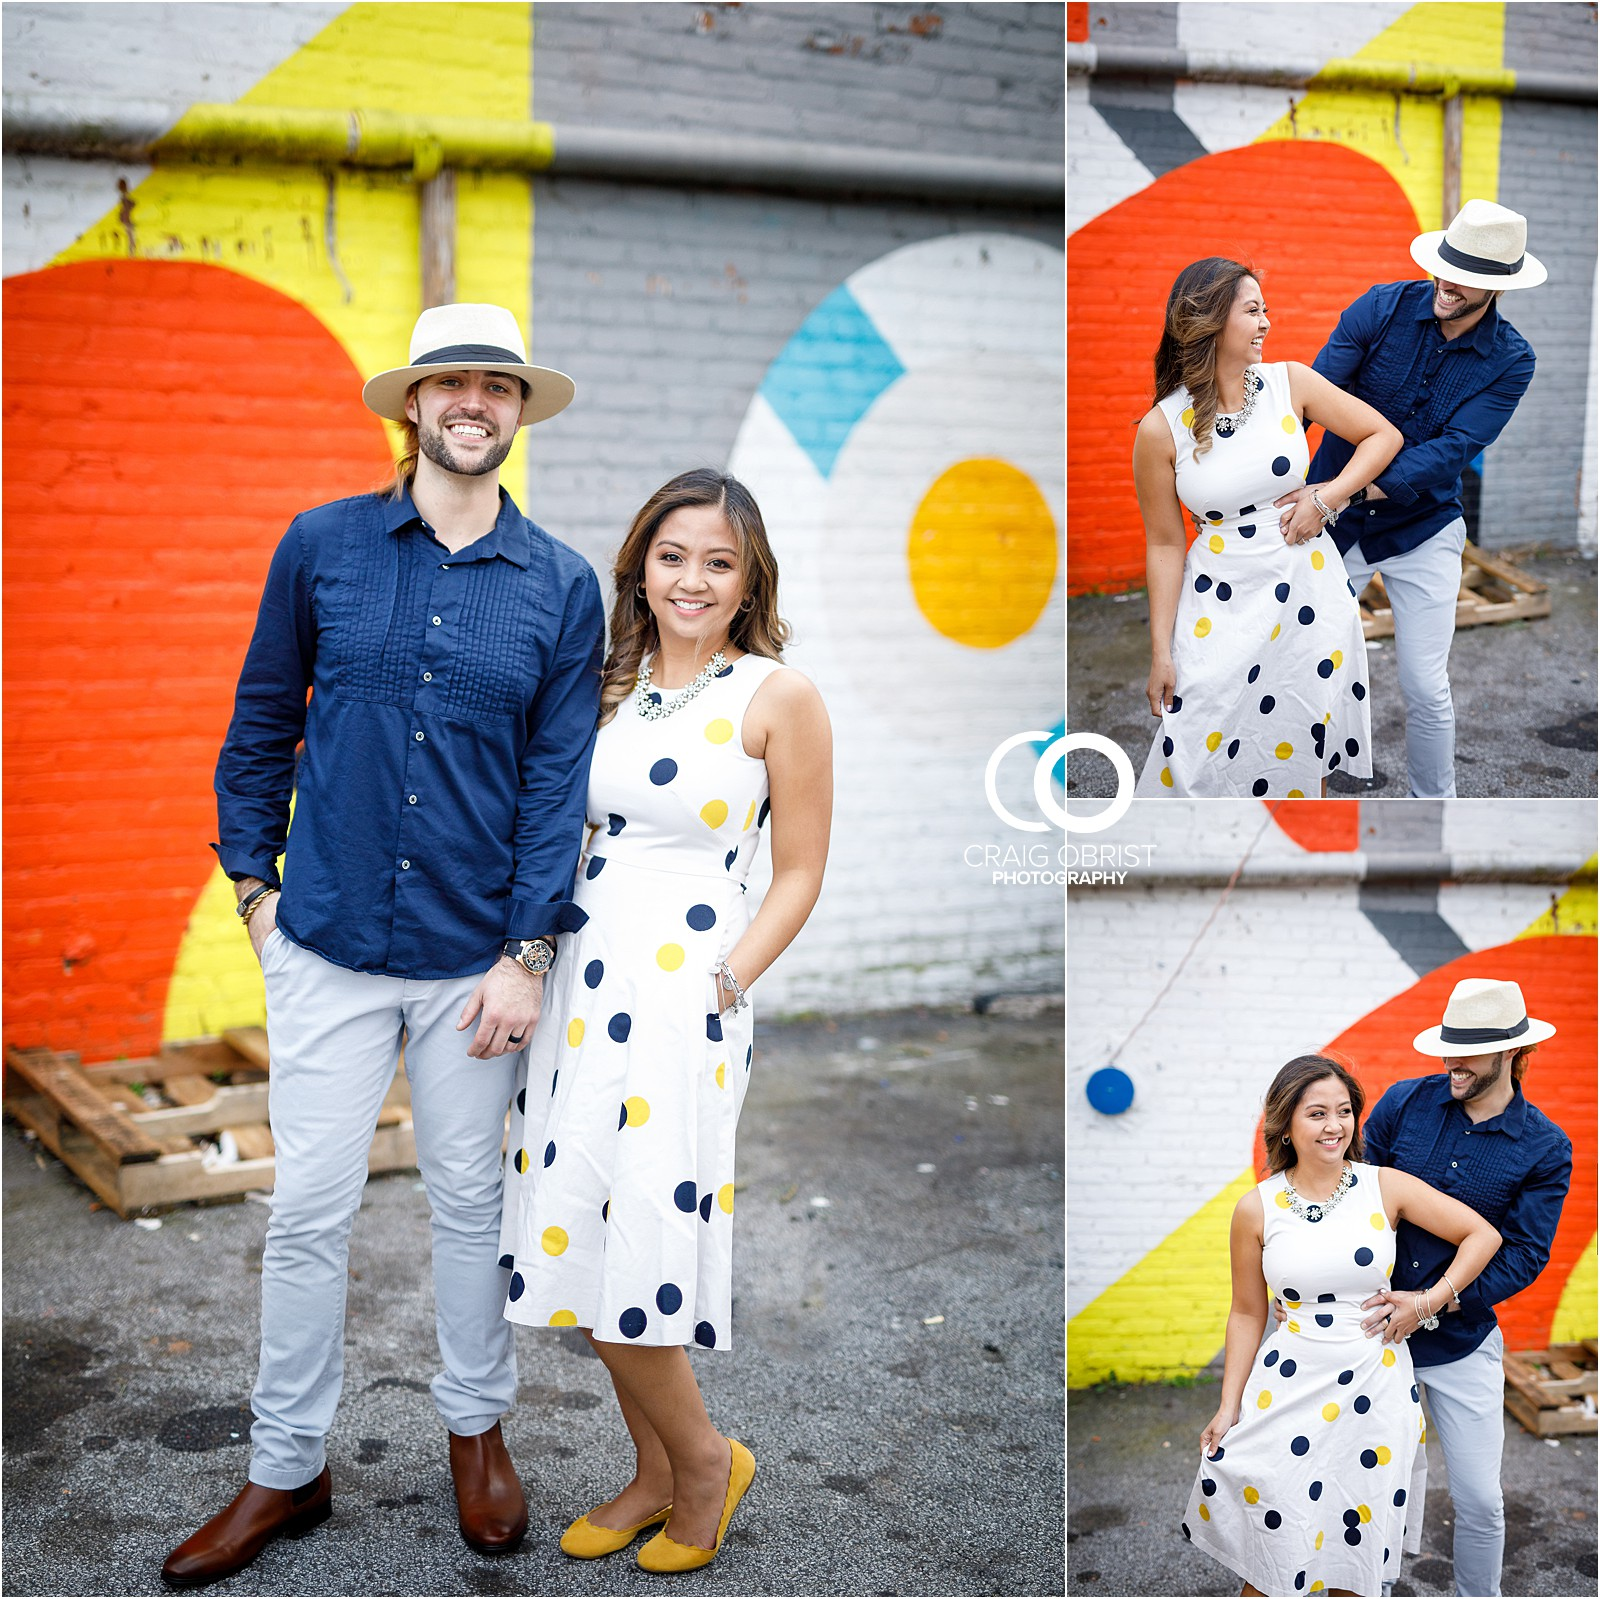 Ponce city Market beltline ventanas wedding portraits_0001.jpg